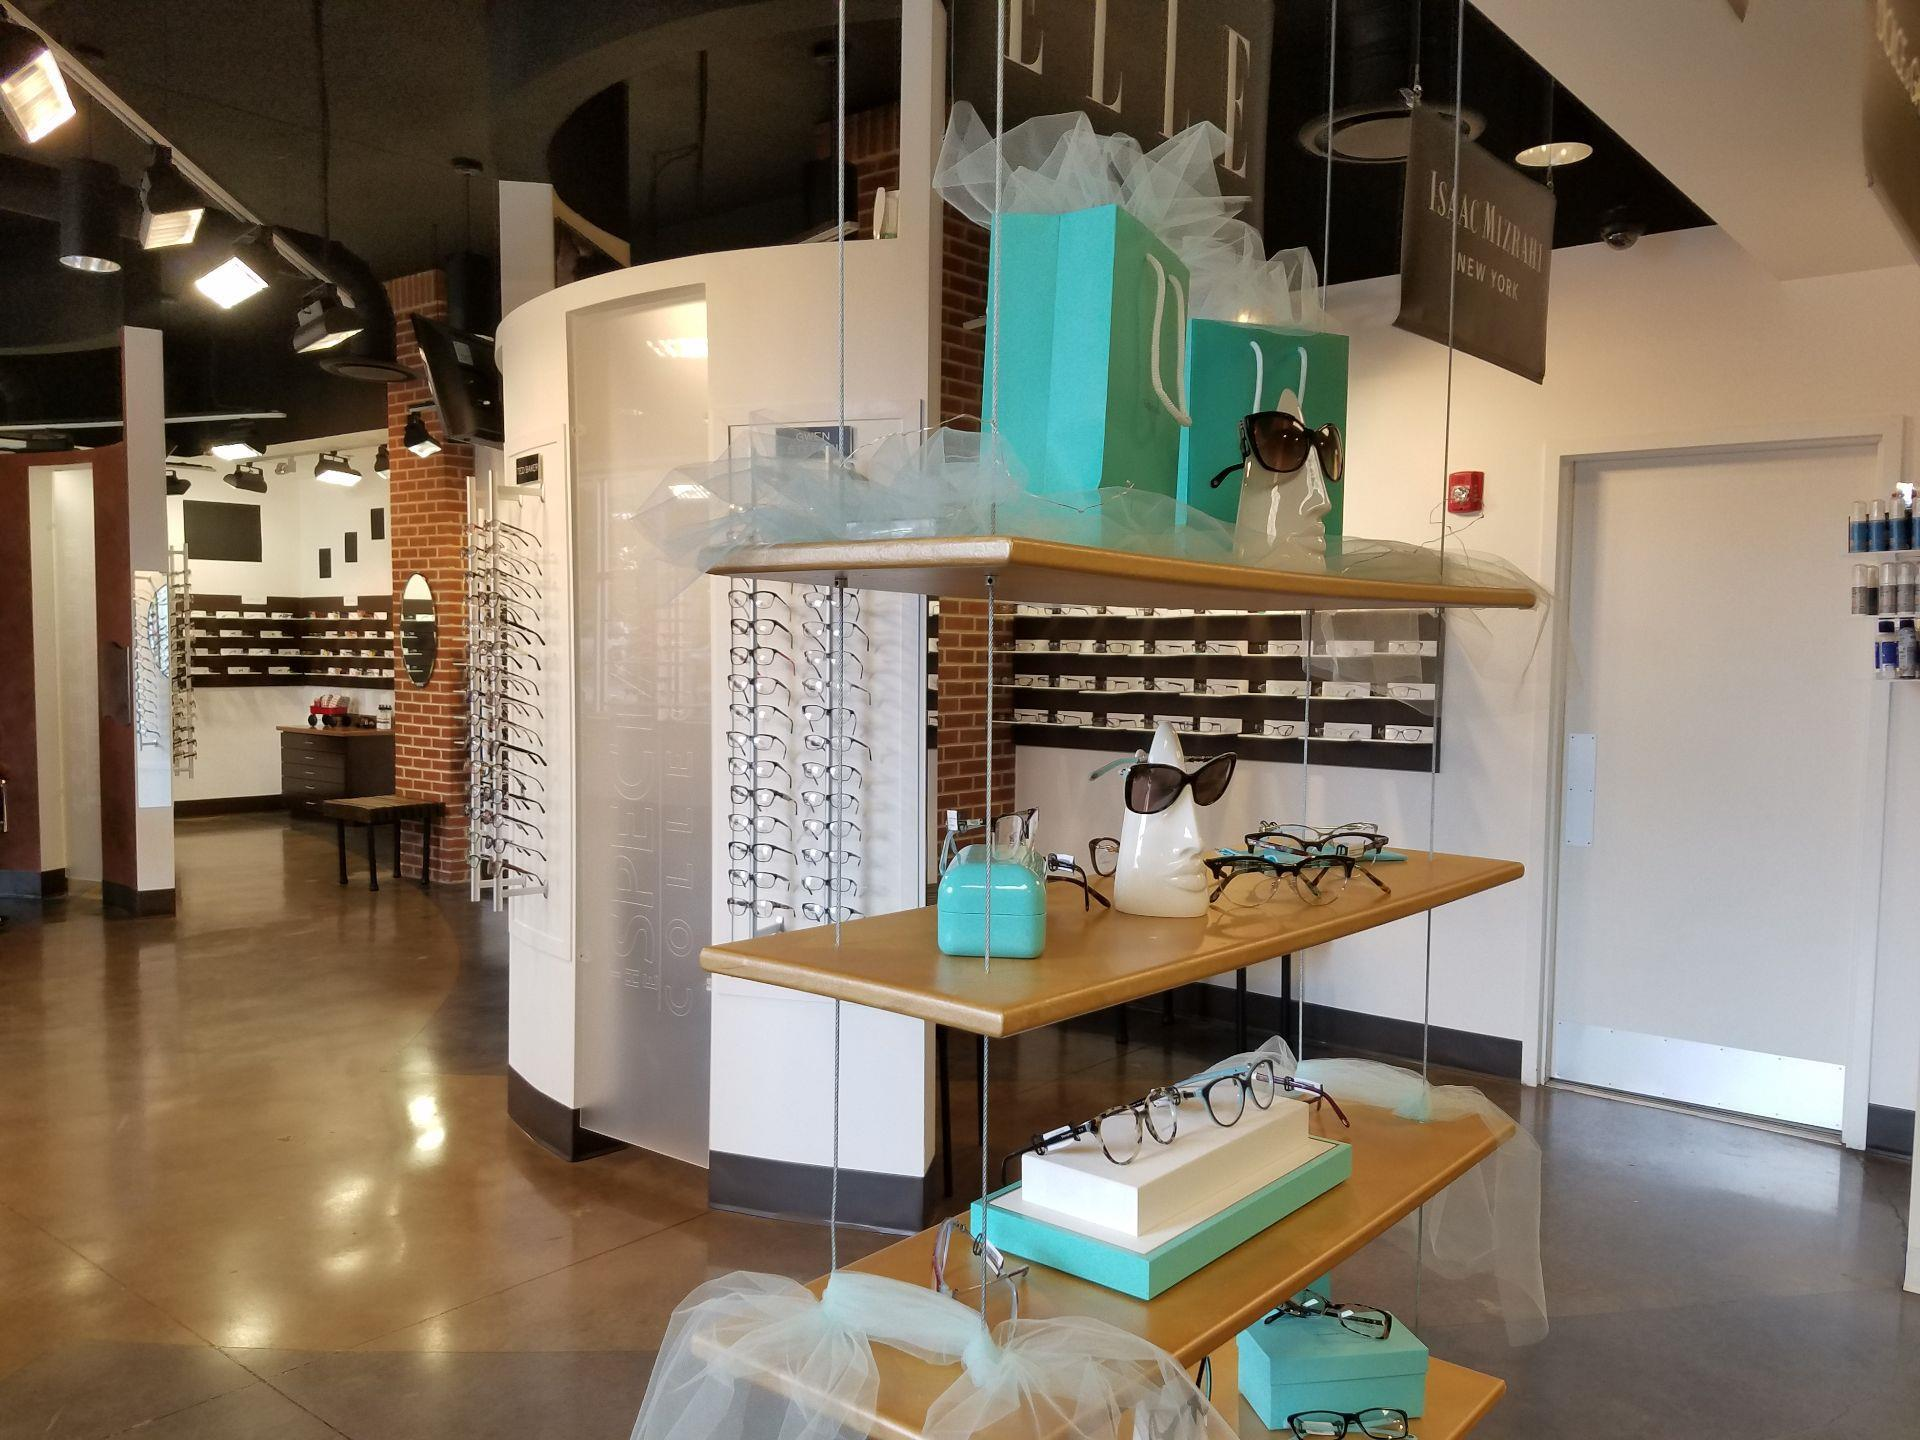 inside of store with sunglasses and blue boxes on display